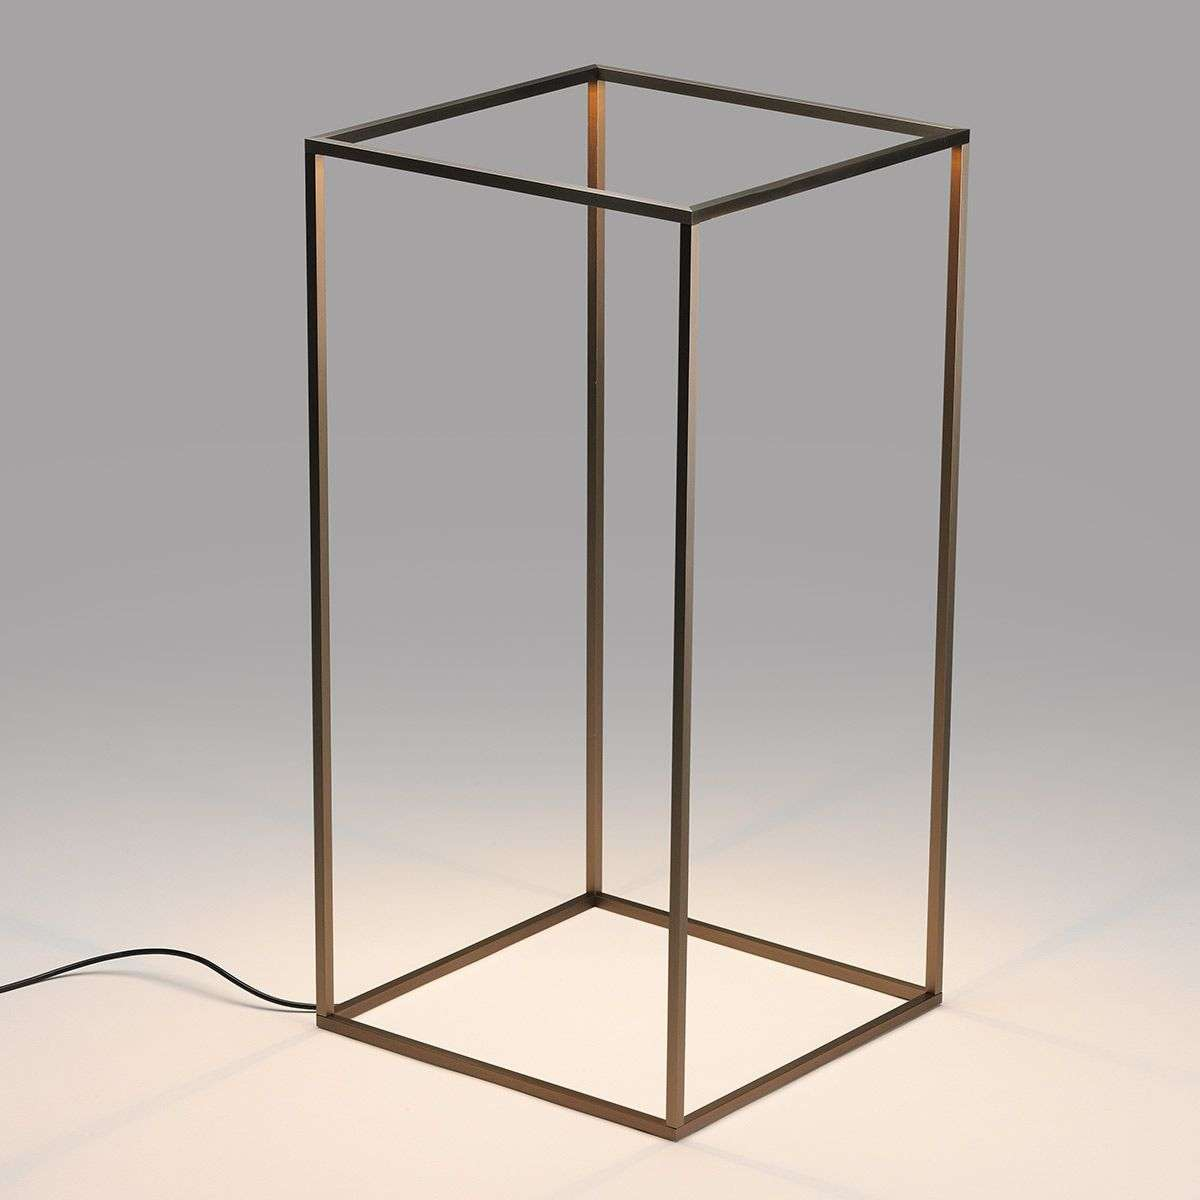 Design-buitenlamp Ipnos Outdoor van FLOS, LED-3510302-38